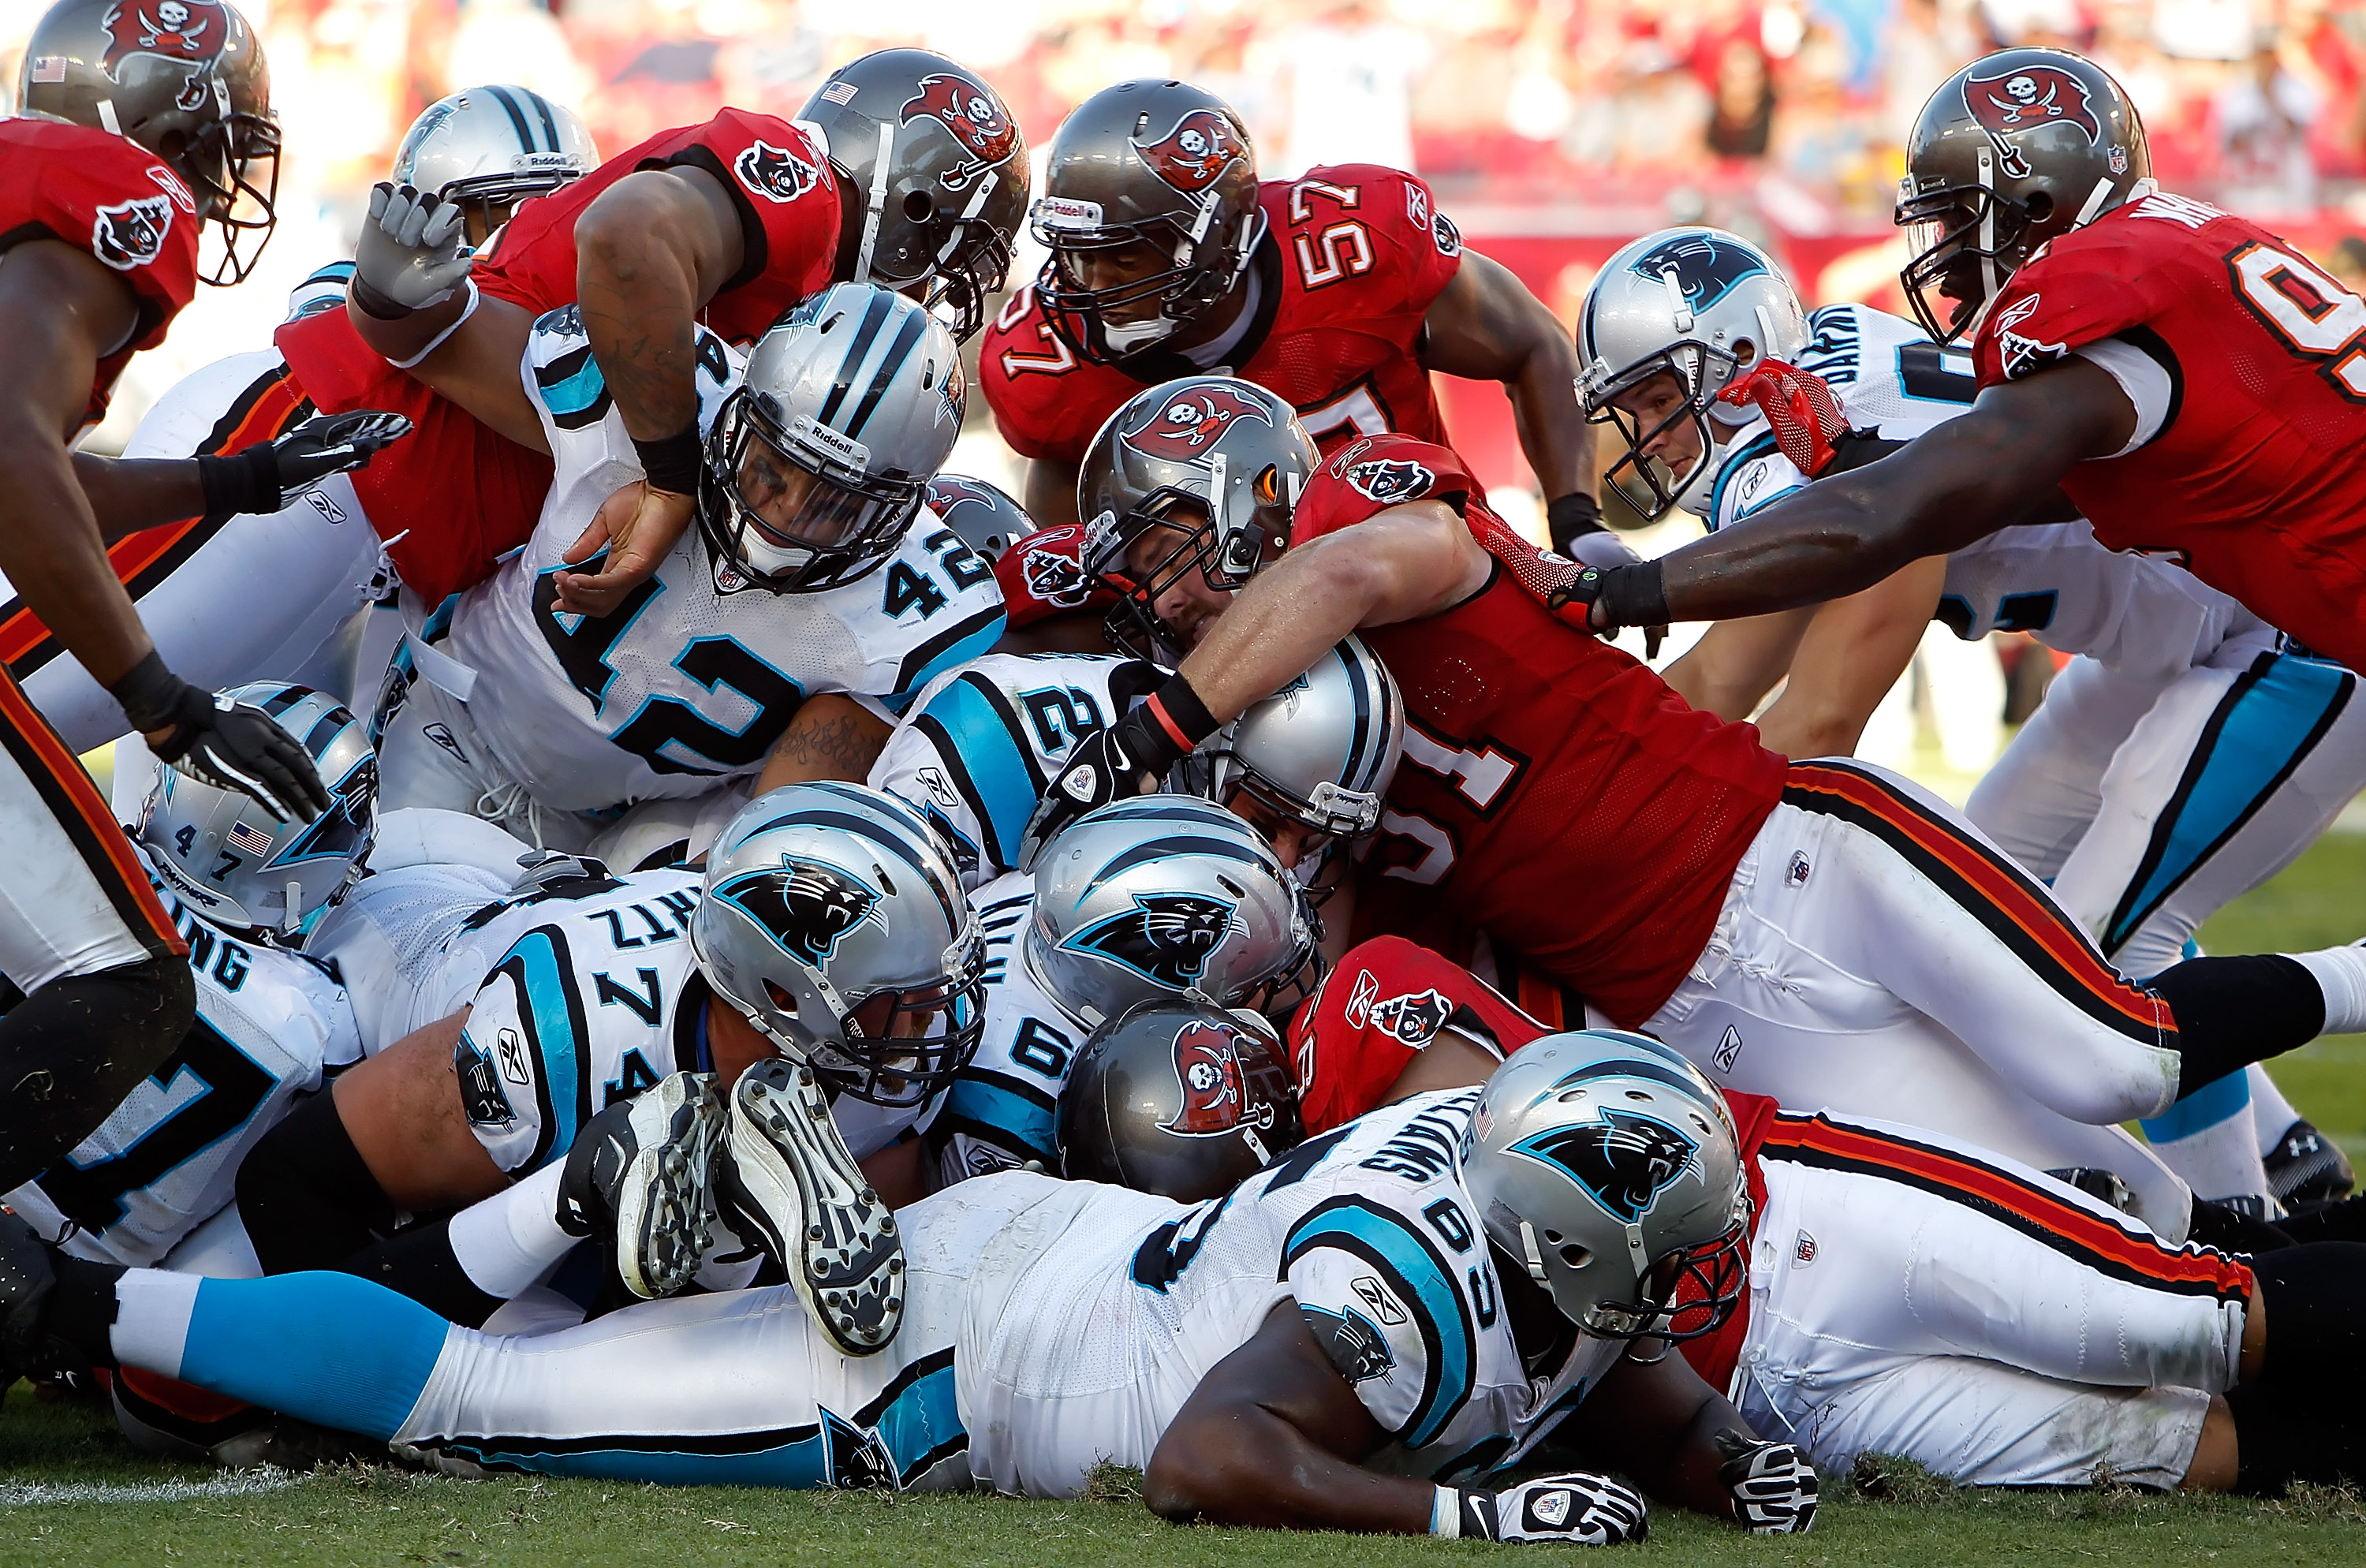 TAMPA, FL - NOVEMBER 14:  Quarterback Jimmy Clausen #2 of the Carolina Panthers is stopped short of the goal line by the Tampa Bay Buccaneers defense during the game at Raymond James Stadium on November 14, 2010 in Tampa, Florida.  (Photo by J. Meric/Gett